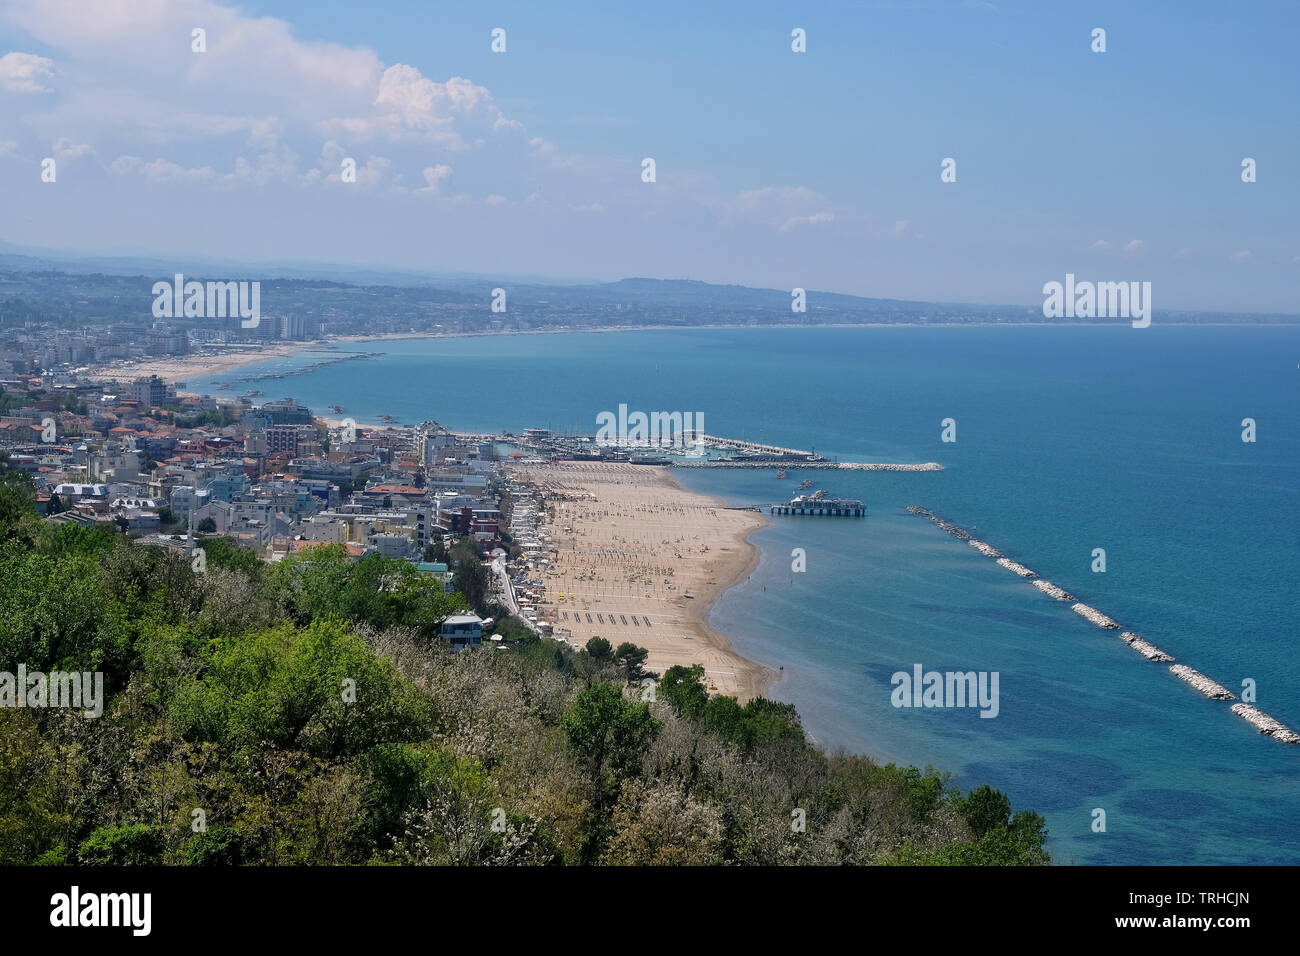 View to the Adriatic coast with Gabbice Mare and Cattolica from the Parco Naturale Monte San Bartolo in the province Marche, Italy. - Stock Image